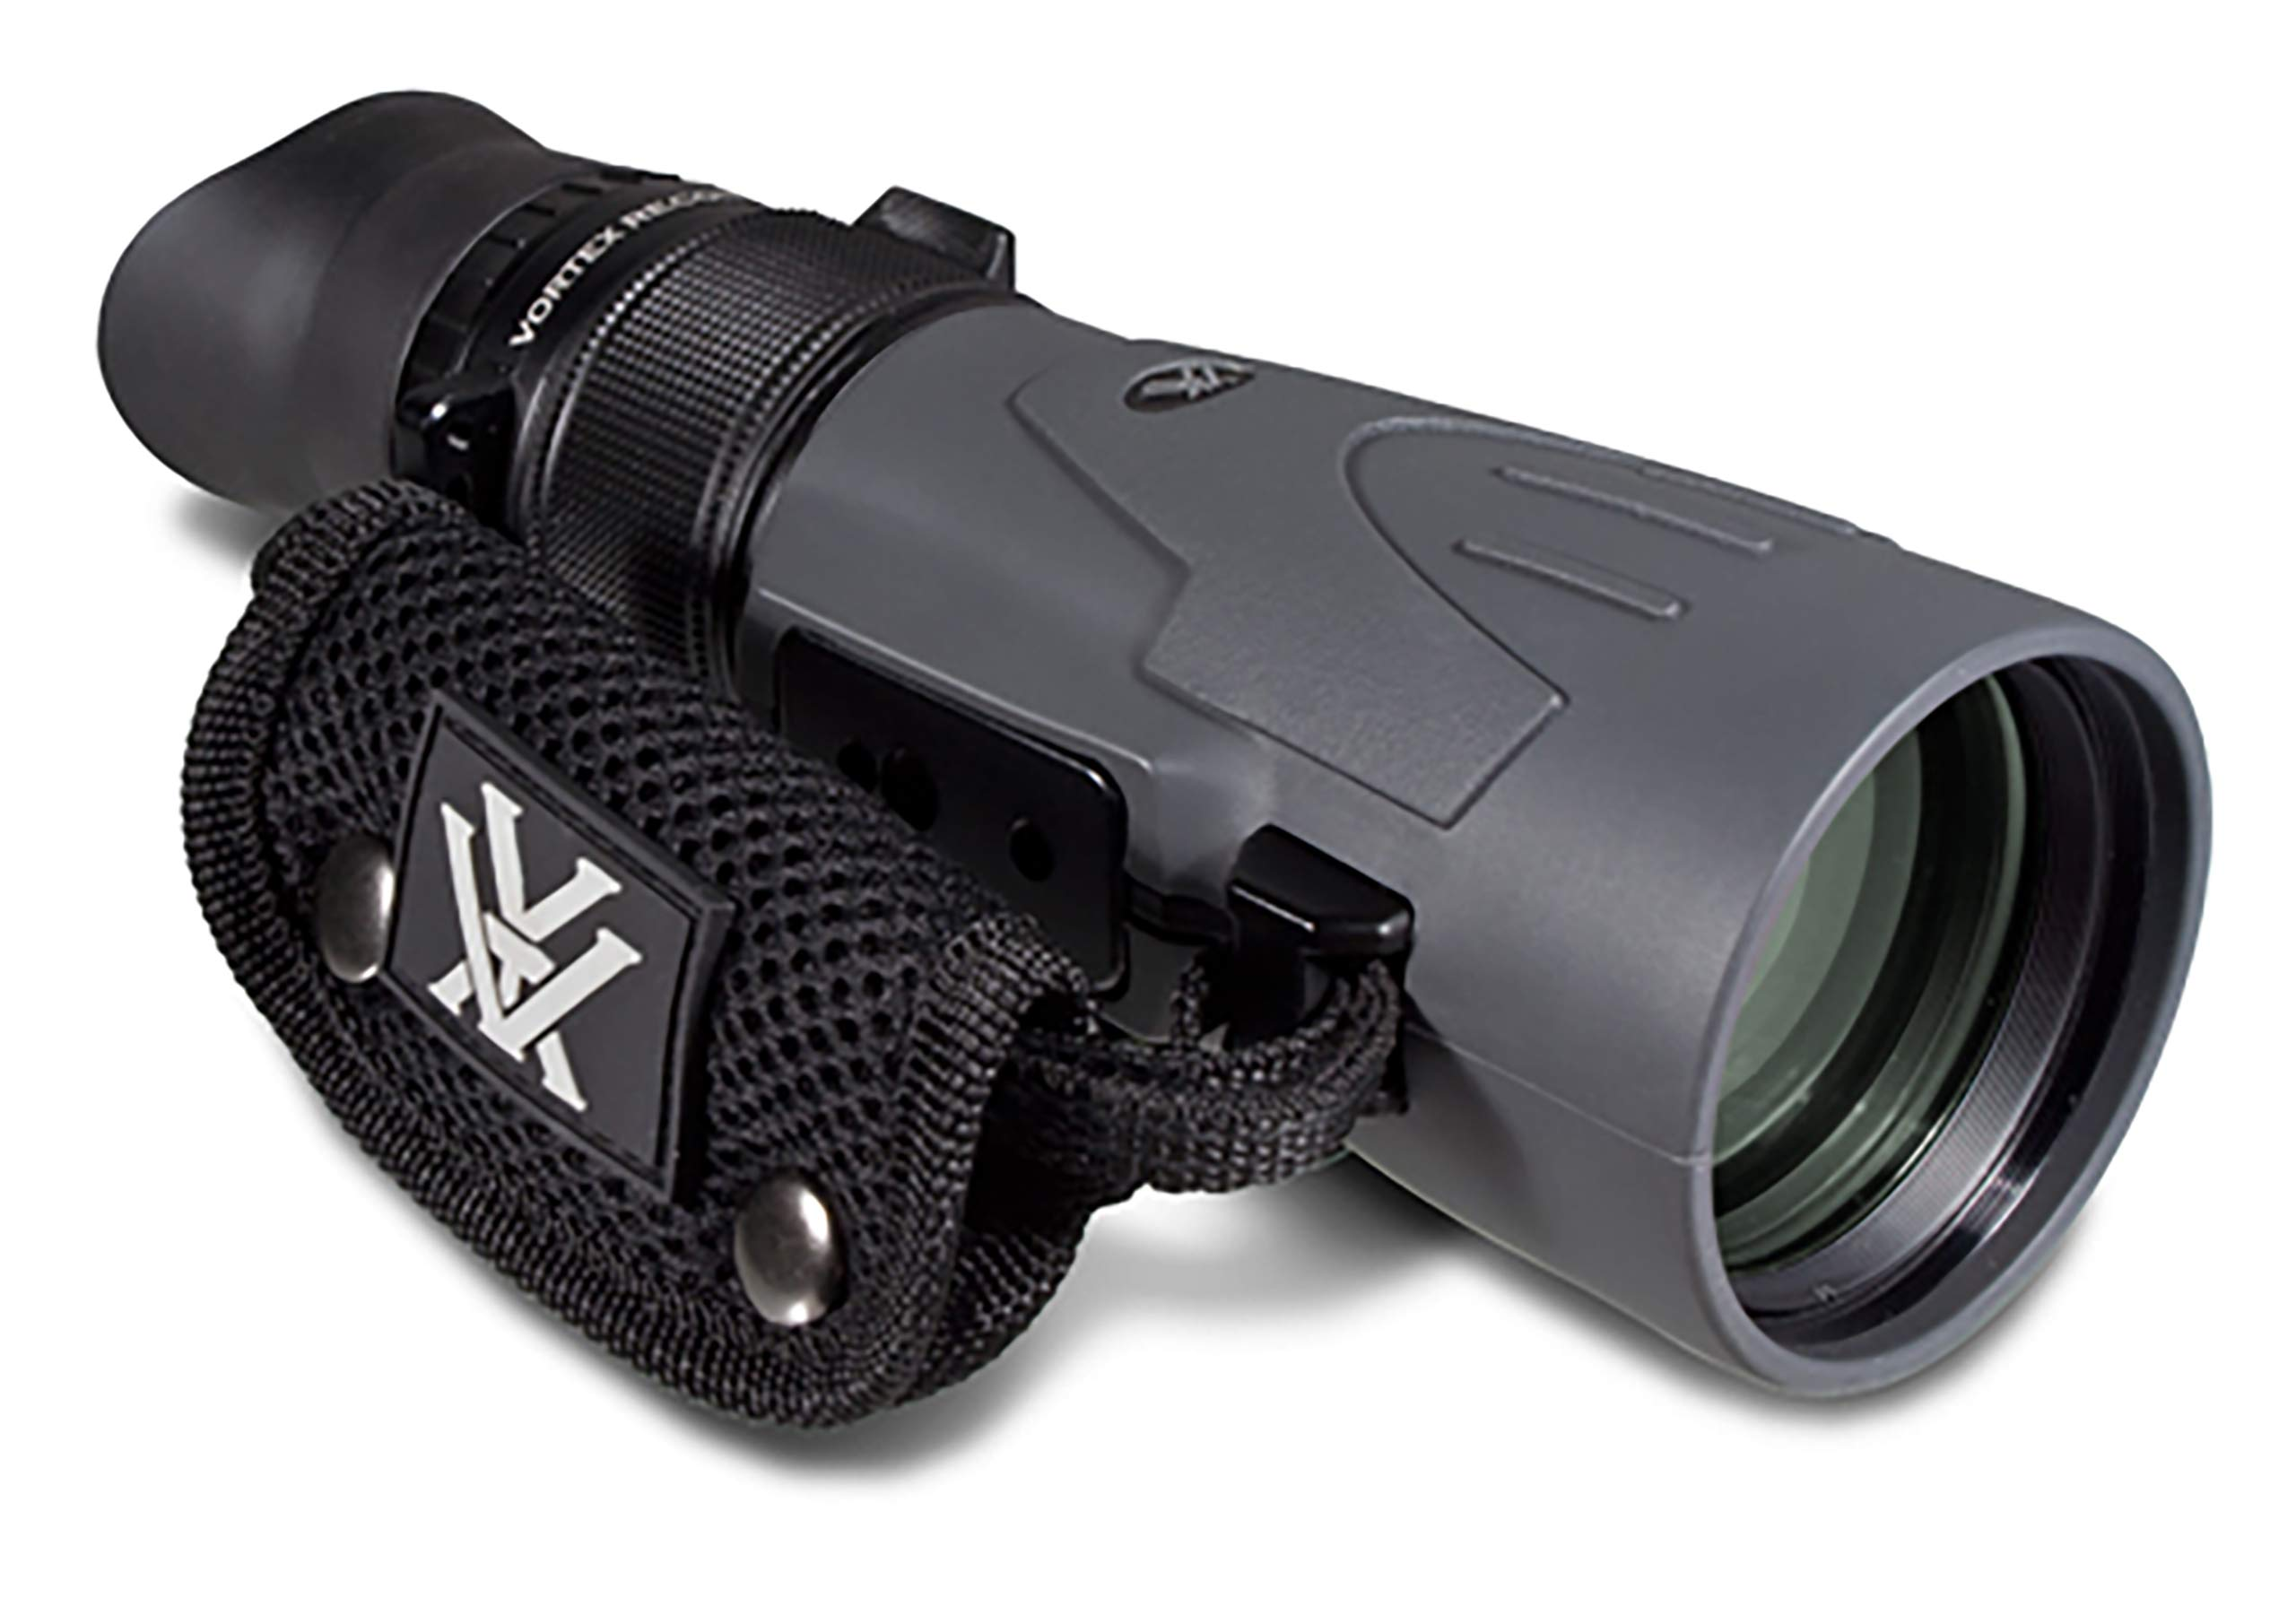 Vortex Optics Recon R/T 15x50 Tactical Scope Monocular by Vortex Optics